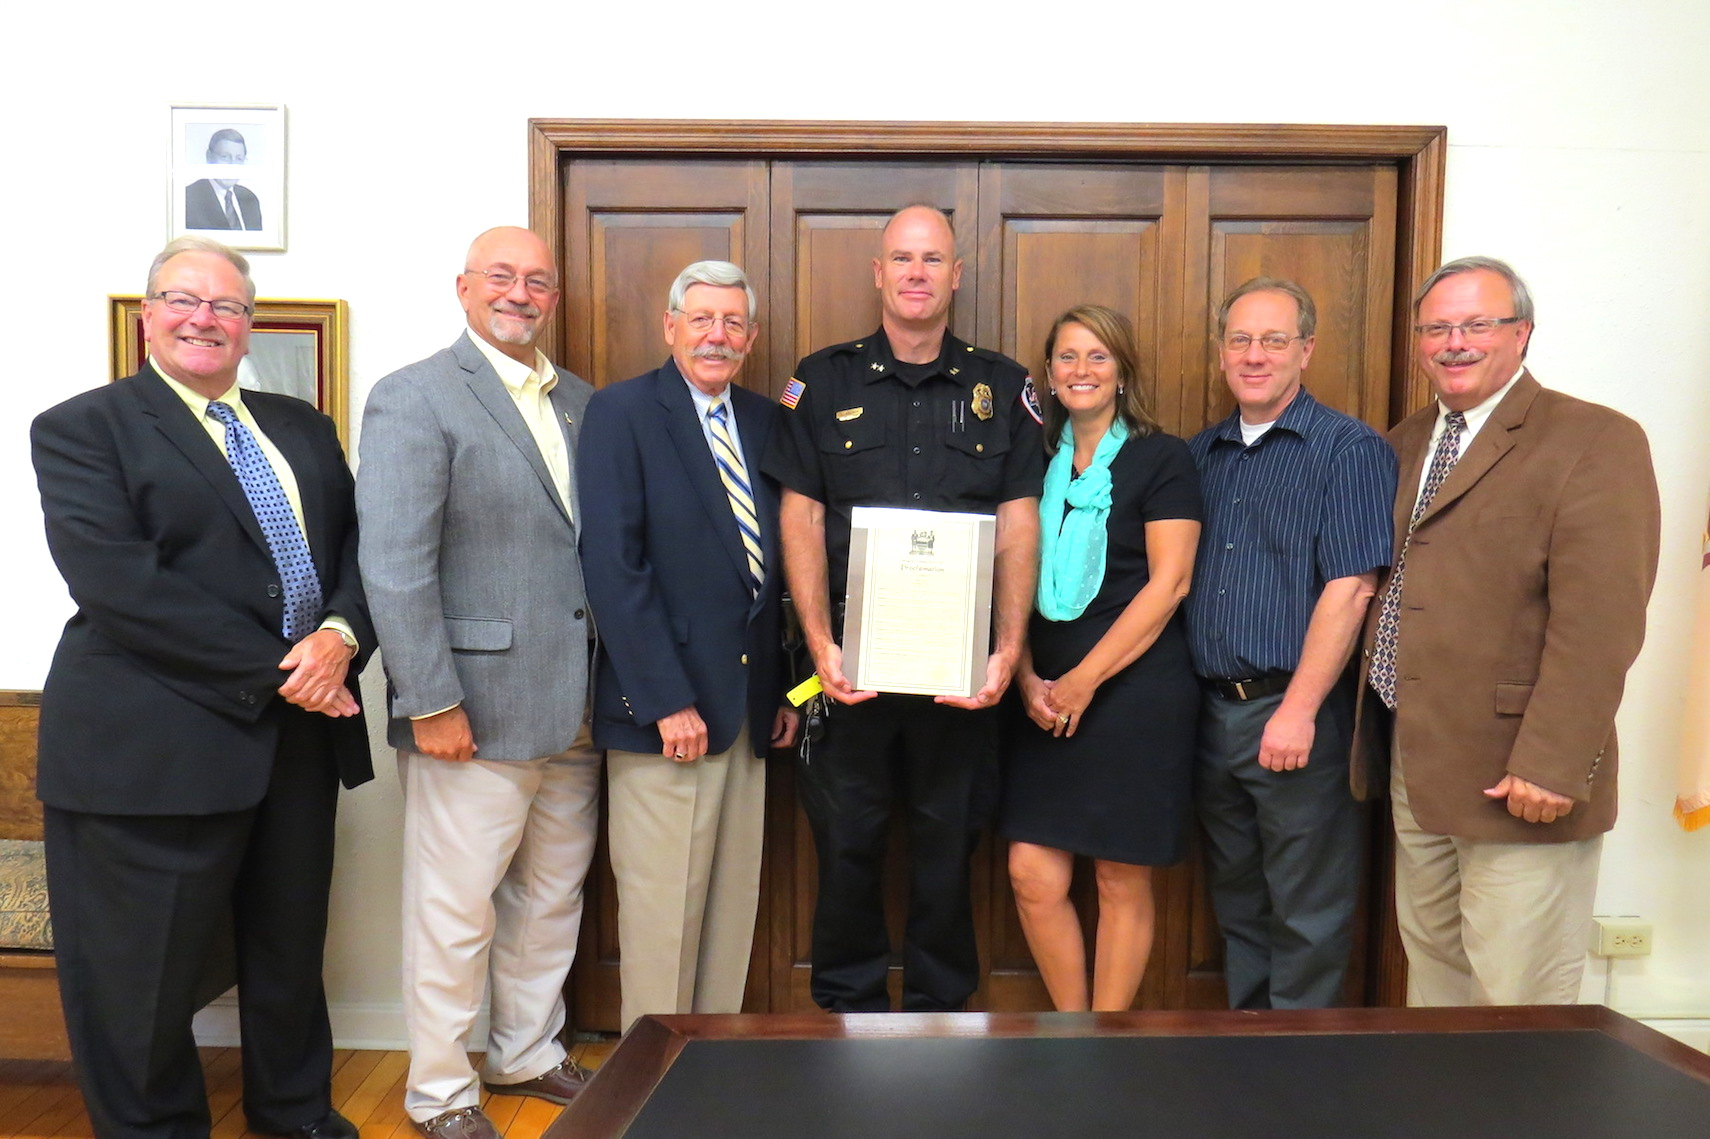 Pictured, from left: Trustee Dan Gibson, Deputy Mayor Bruce Sutherland, Mayor Terry Collesano, Lewiston Police Chief Chris Salada, Clerk/Treasurer Amy Salada, Trustee Nick Conde and Trustee Vic Eydt. Click for a larger image.